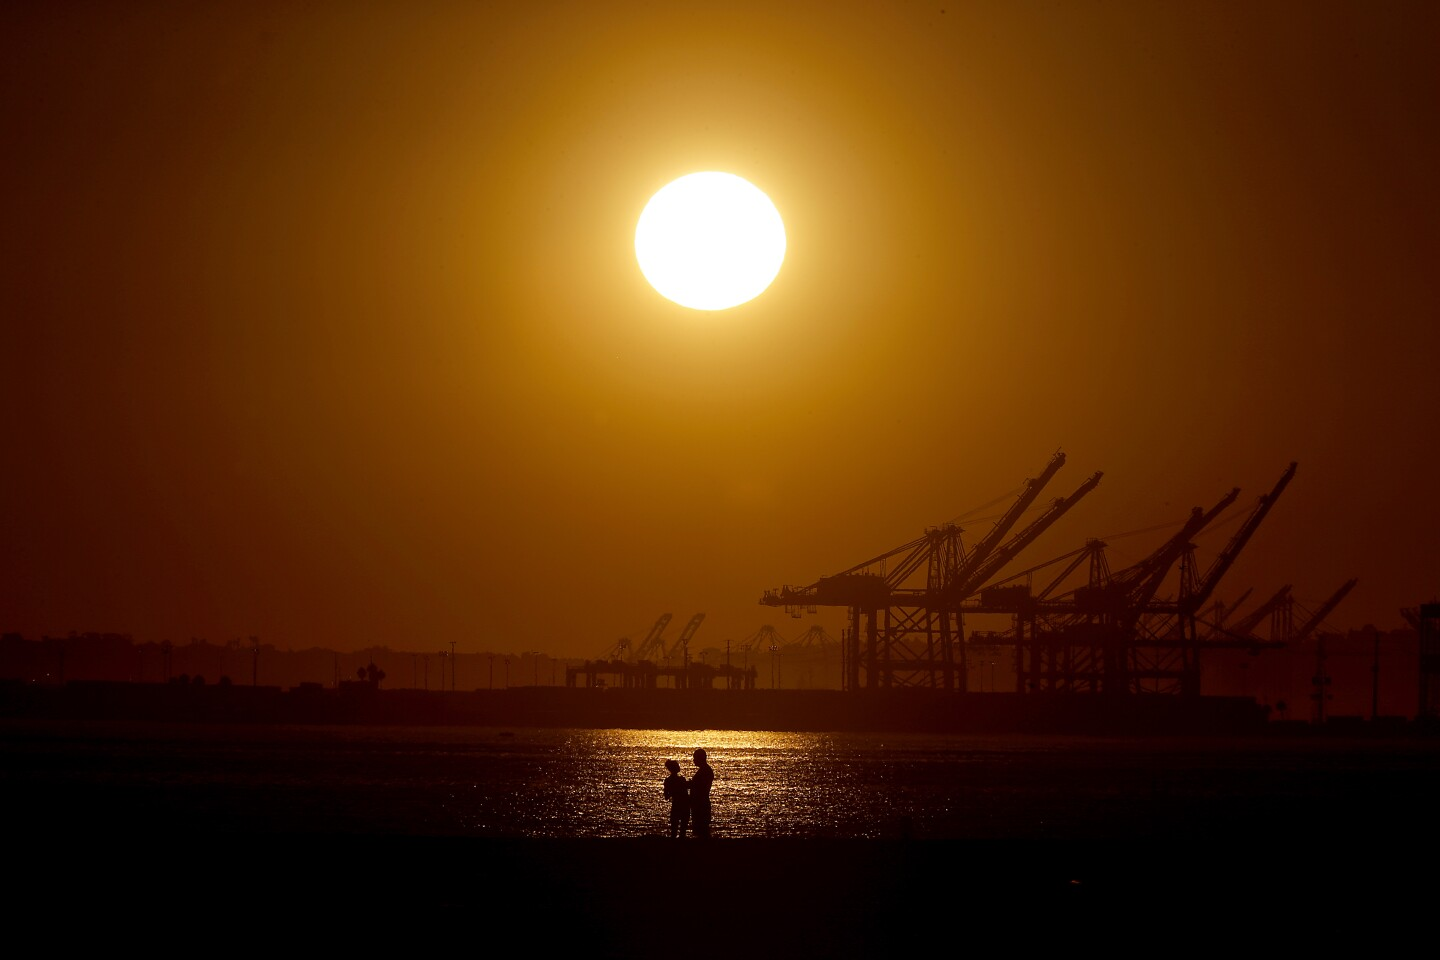 LONGE BEACH, CALIF. - OCT. 22, 2019. A couple take in the sunset at Belmont Shore in Long Beach, parts of which hit 98 degrees on Tuesday, Oct. 22, 2019. (Luis Sinco/Los Angeles Times)